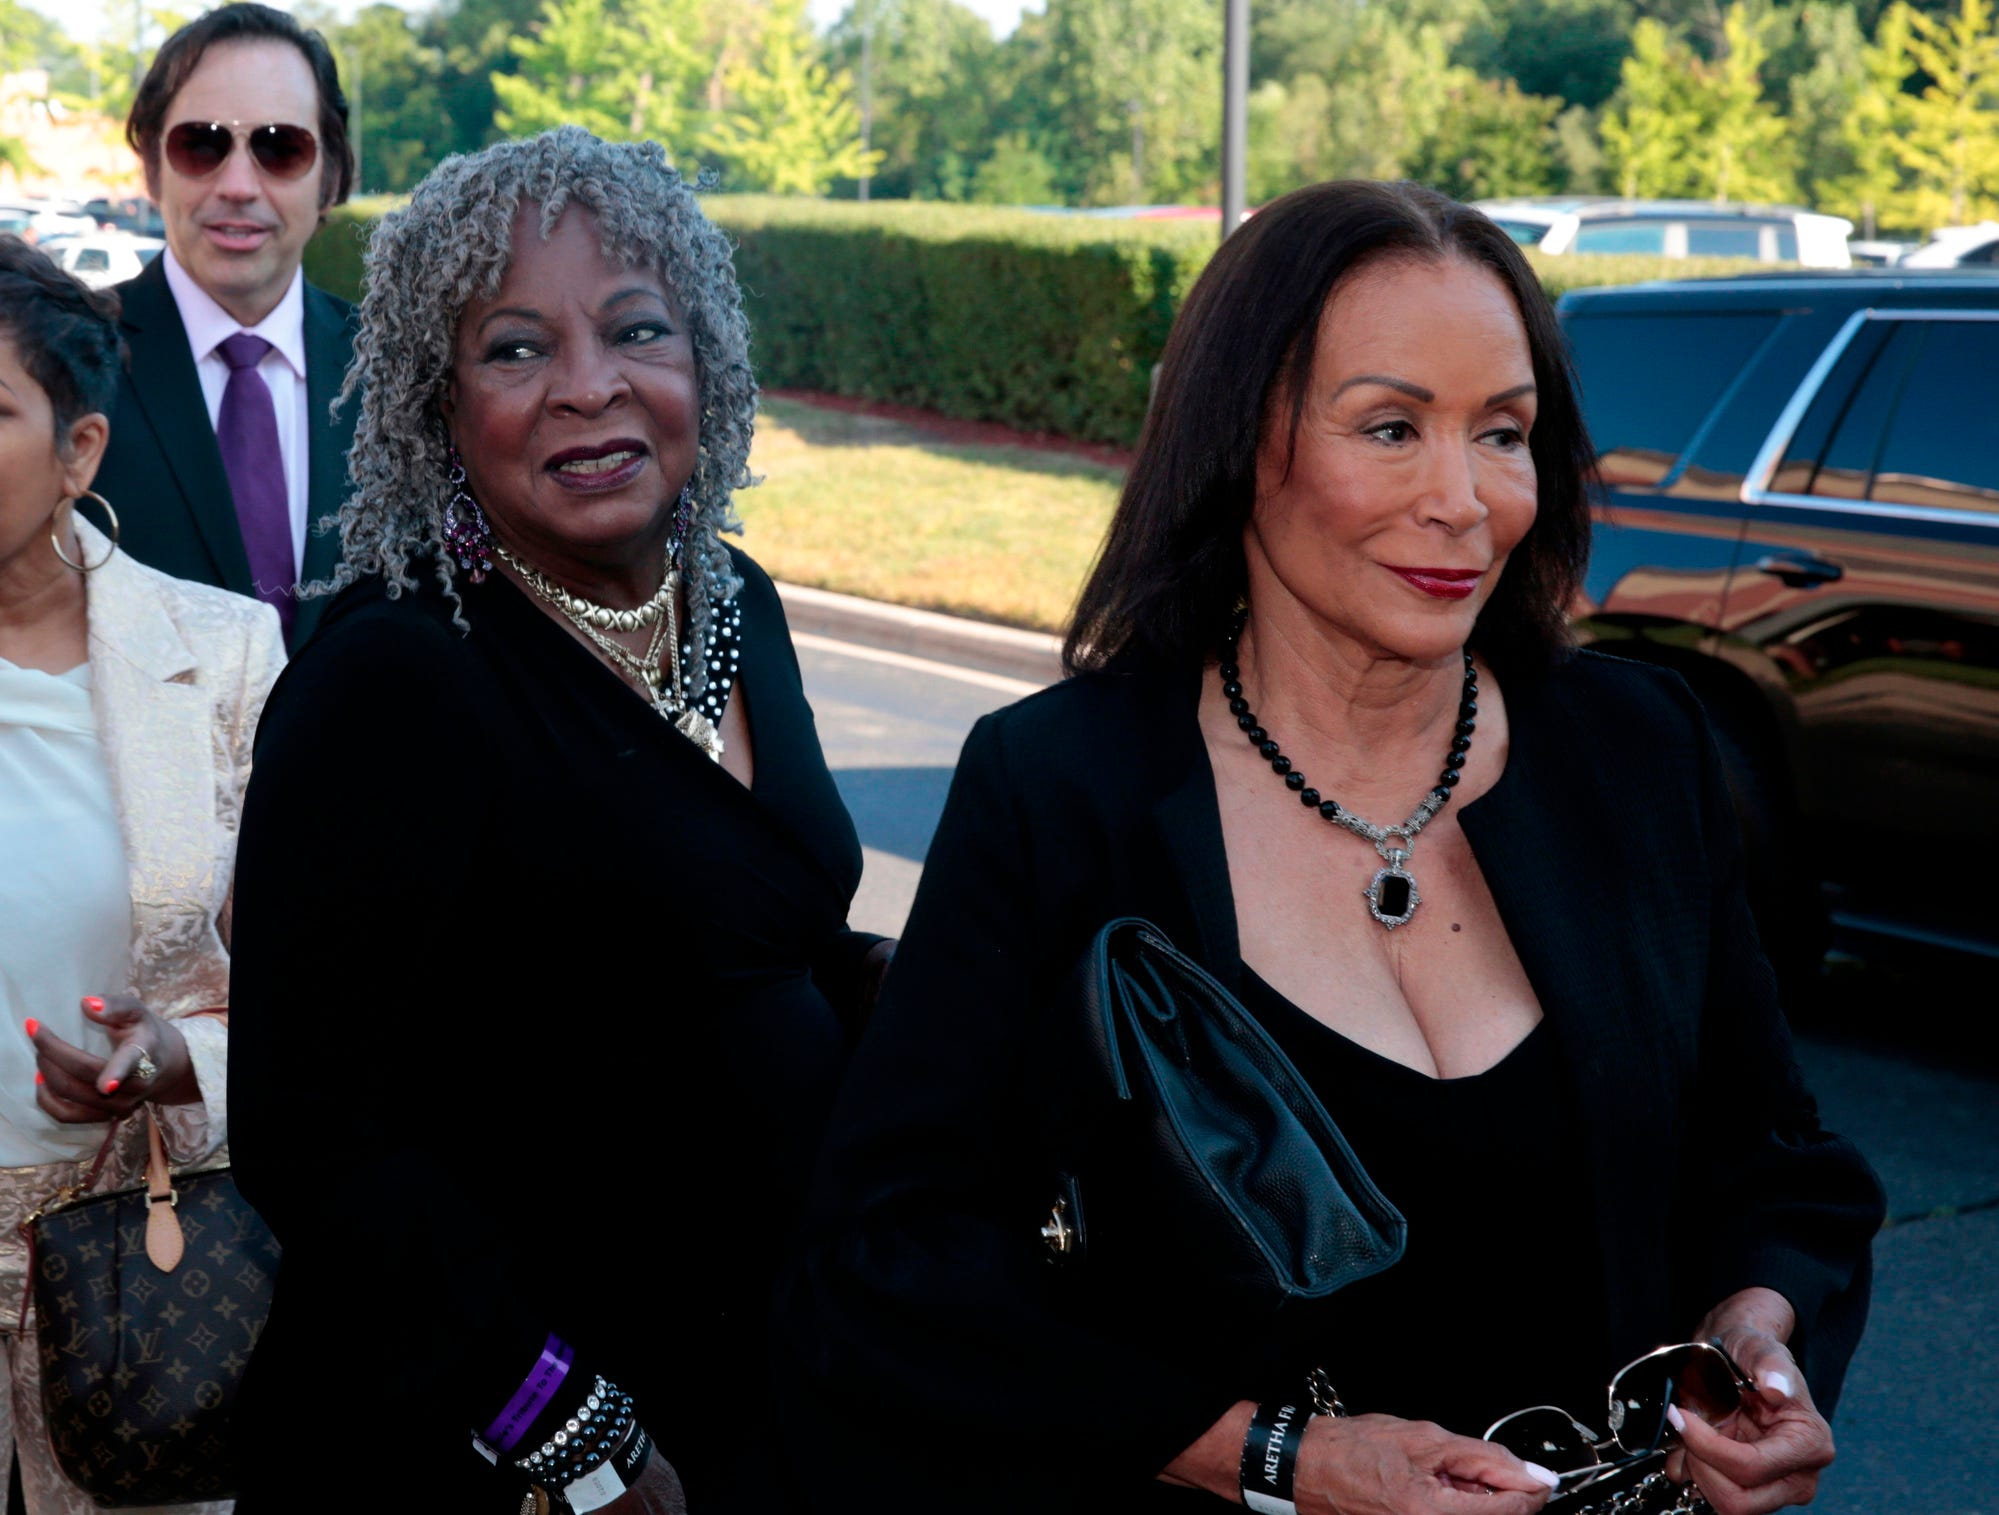 Motown artist Martha Reeves, 2nd right, and Freda Payne, right, arrive for Aretha Franklin's funeral at the Greater Grace Temple on Friday.